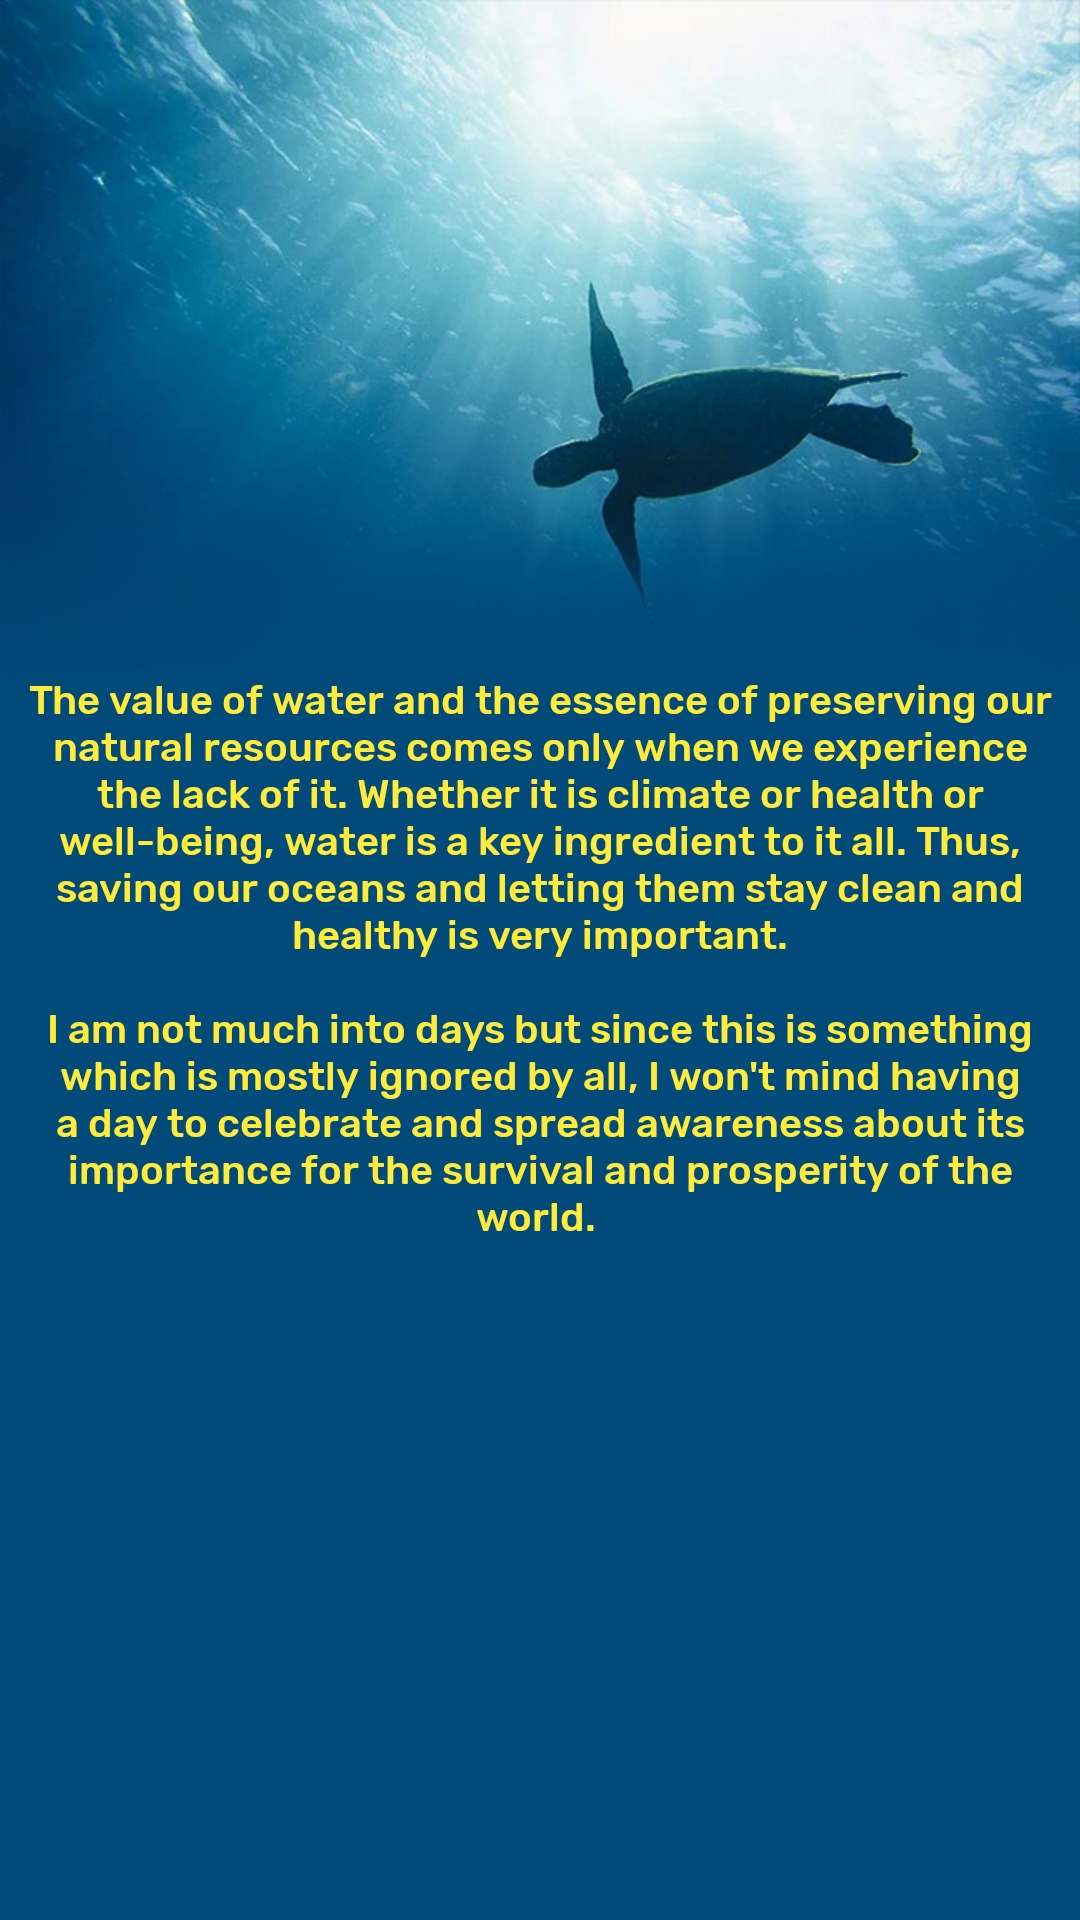 The value of water and the essence of preserving our natural resources comes only when we experience the lack of it. Whether it is climate or health or well-being, water is a key ingredient to it all. Thus, saving our oceans and letting them stay clean and healthy is very important.  I am not much into days but since this is something which is mostly ignored by all, I won't mind having a day to celebrate and spread awareness about its importance for the survival and prosperity of the world.